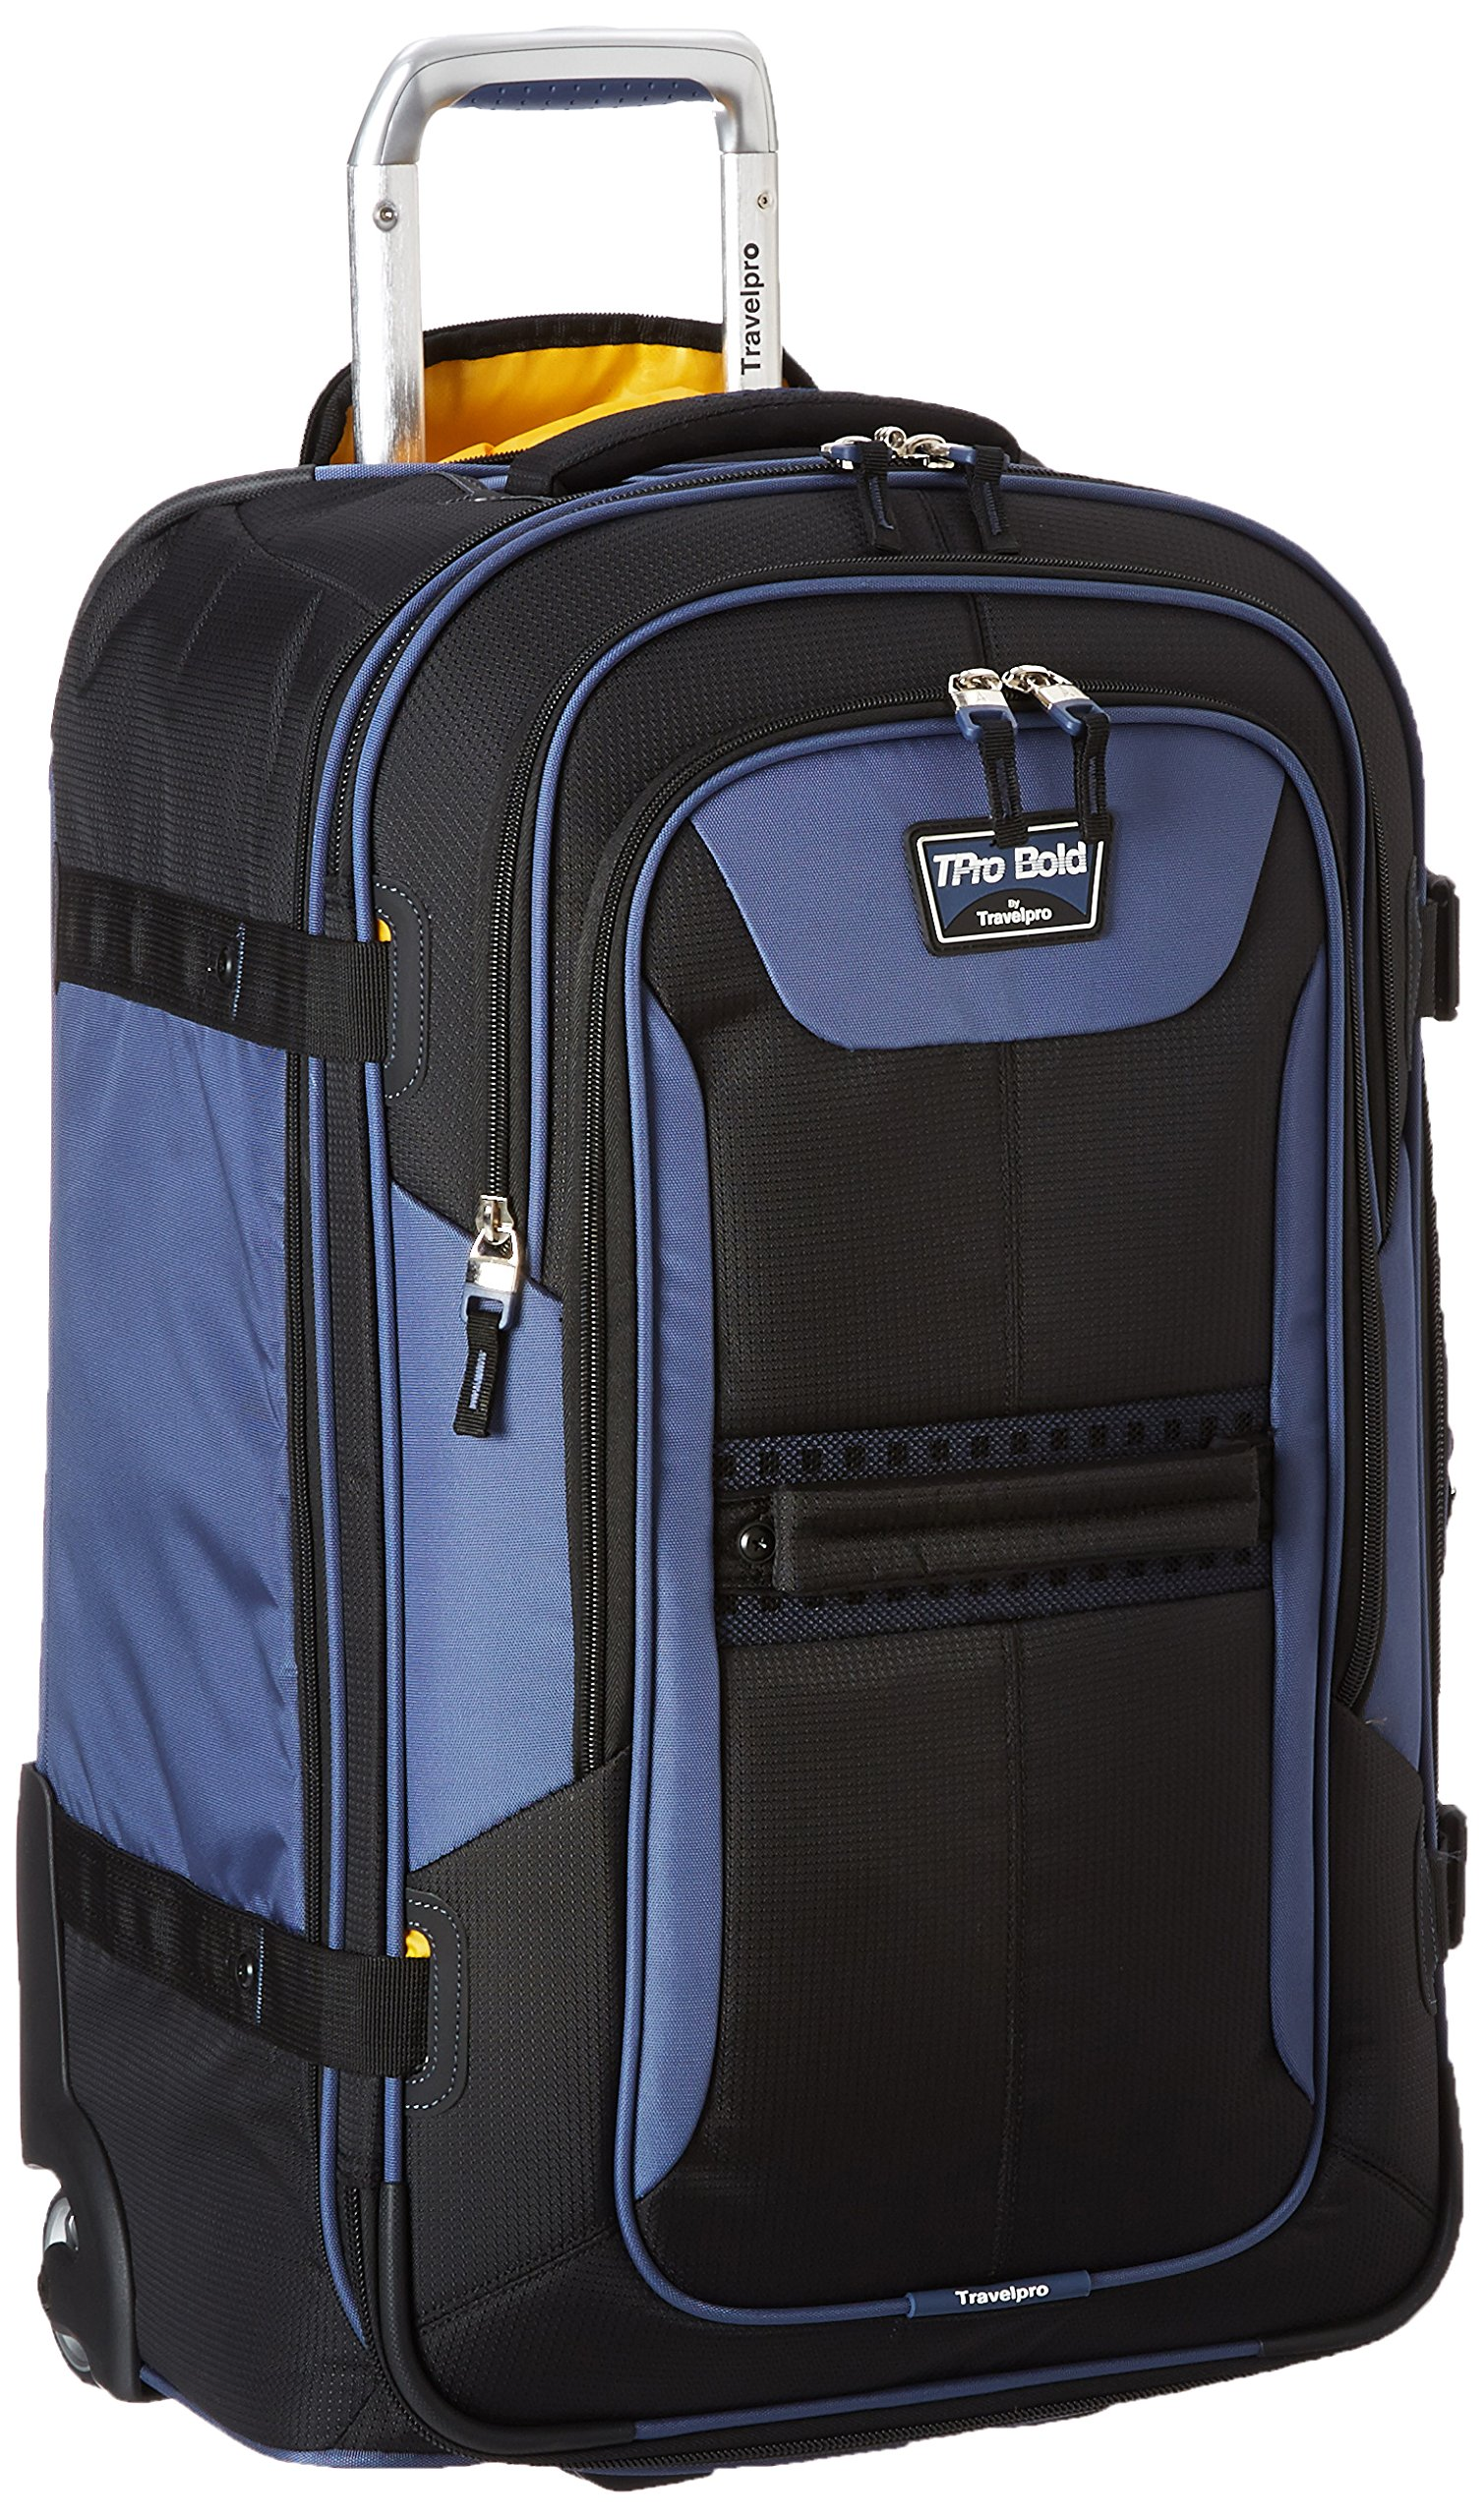 Travelpro Tpro Bold 2.0 25 Inch Expandable Rollaboard, Black/Navy, One Size